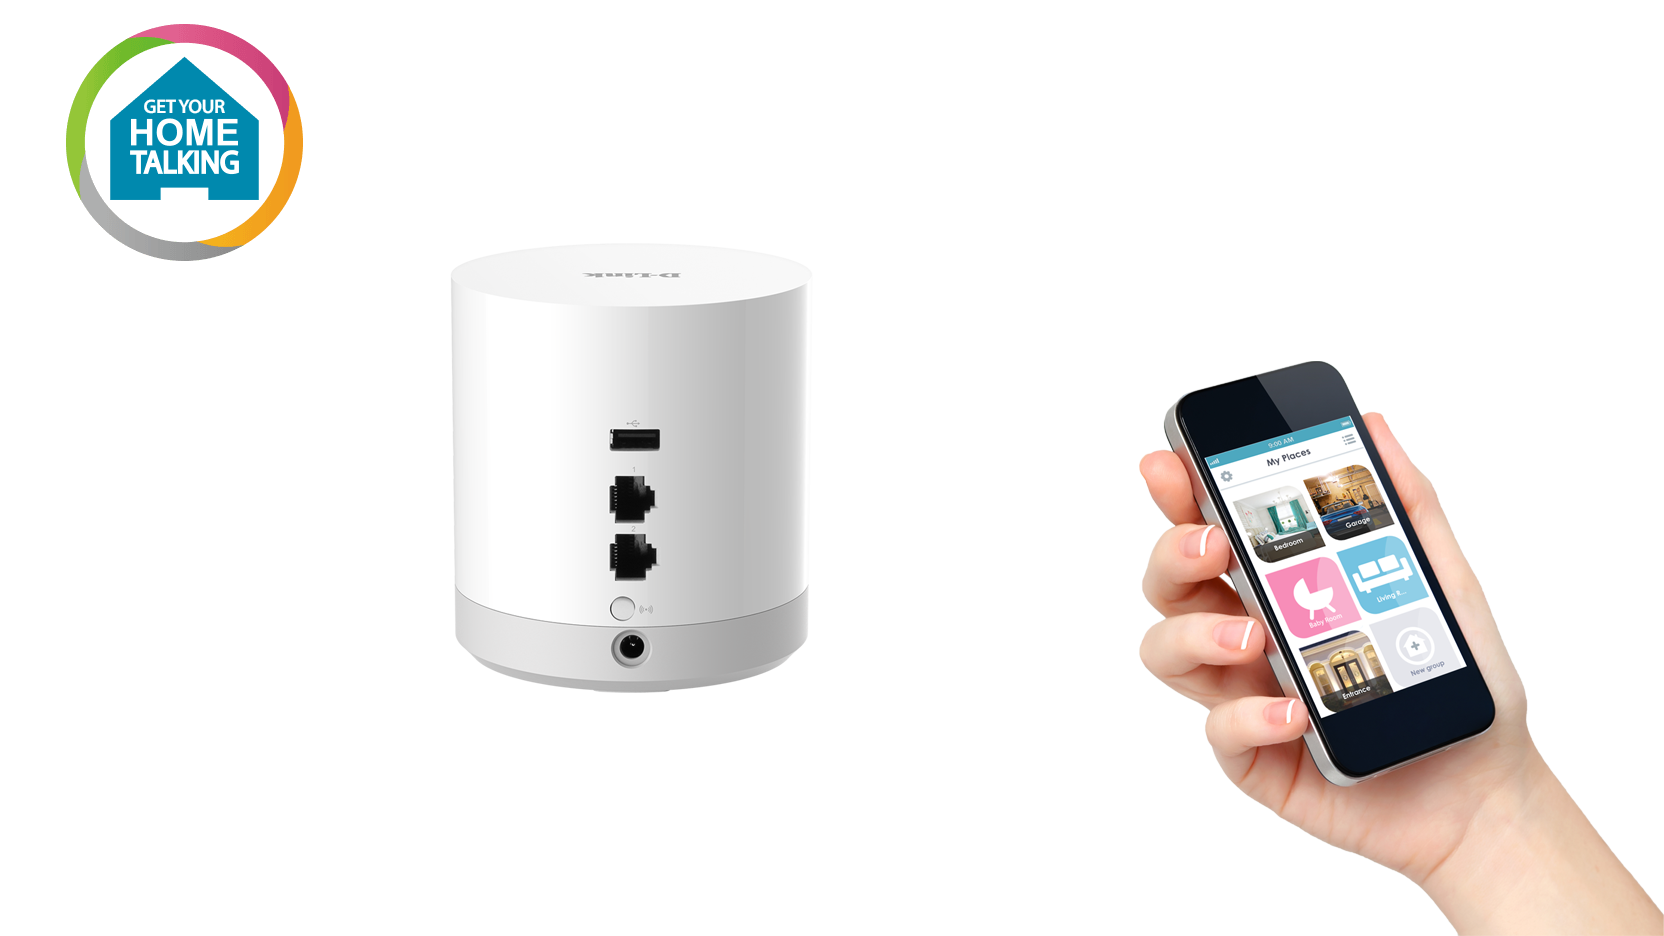 DCH-G020 mydlink Home - Connect Home Hub Back